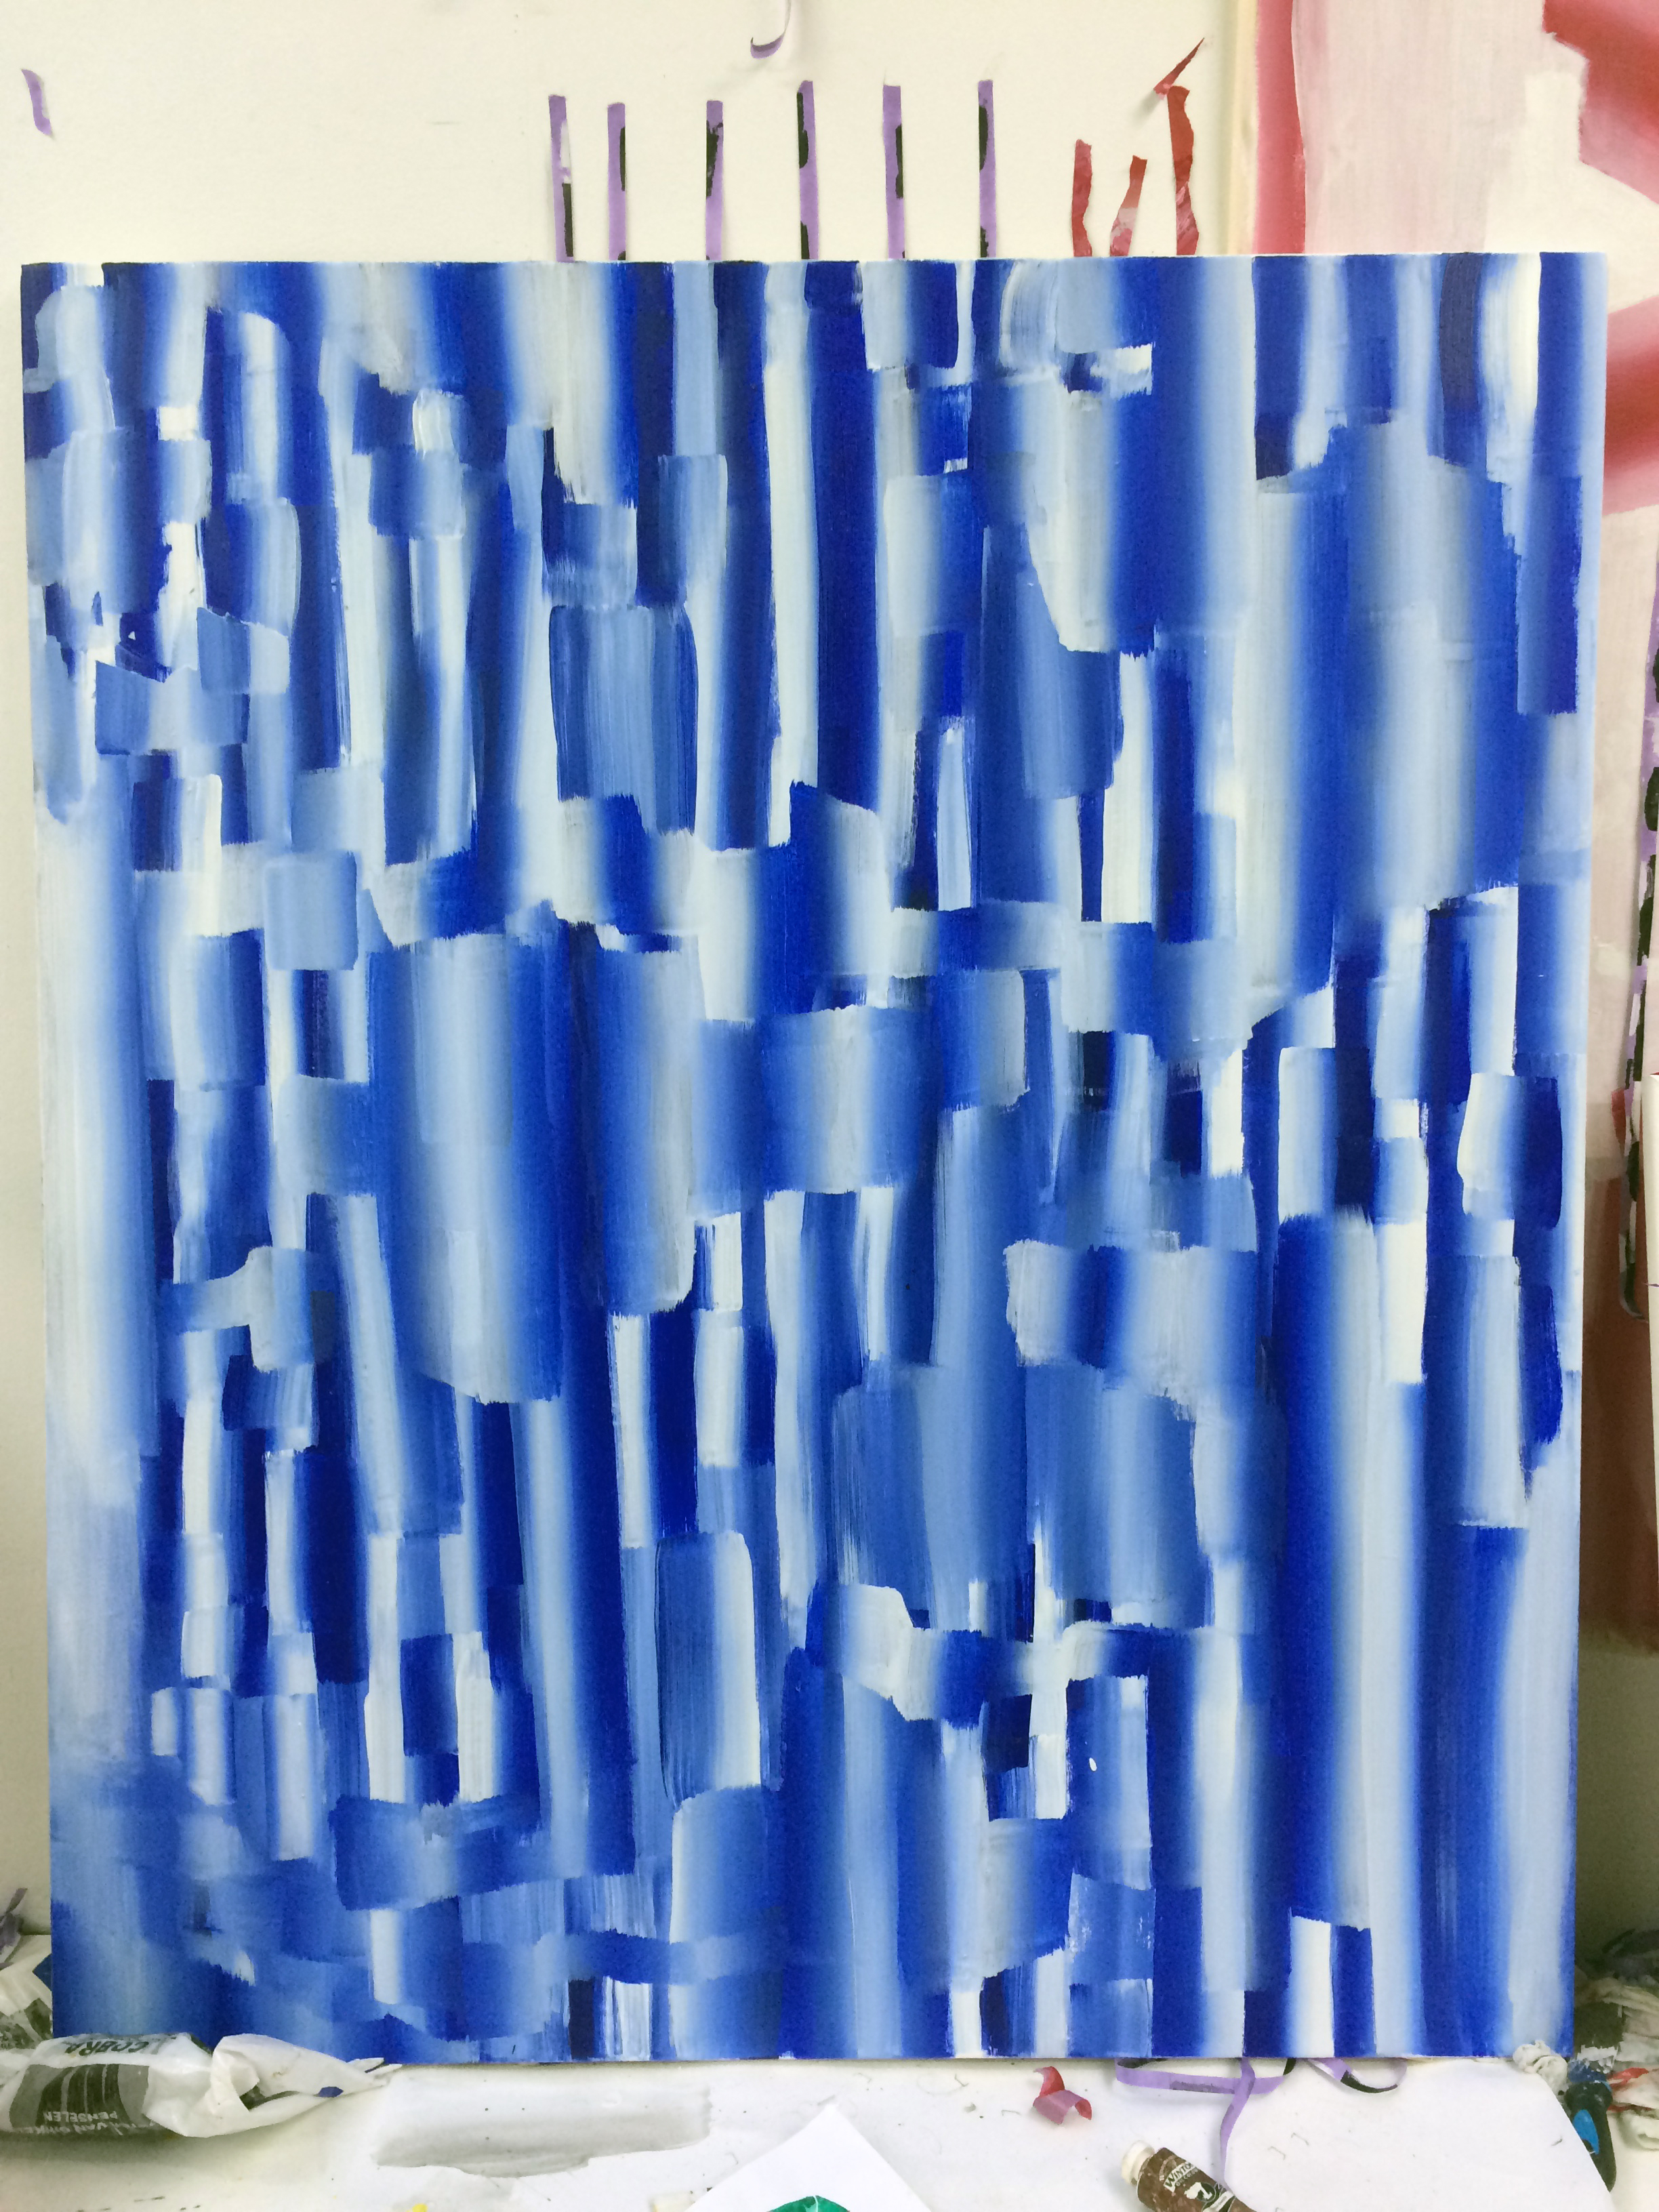 untitled, oil on canvas, 140x120cms, 2018